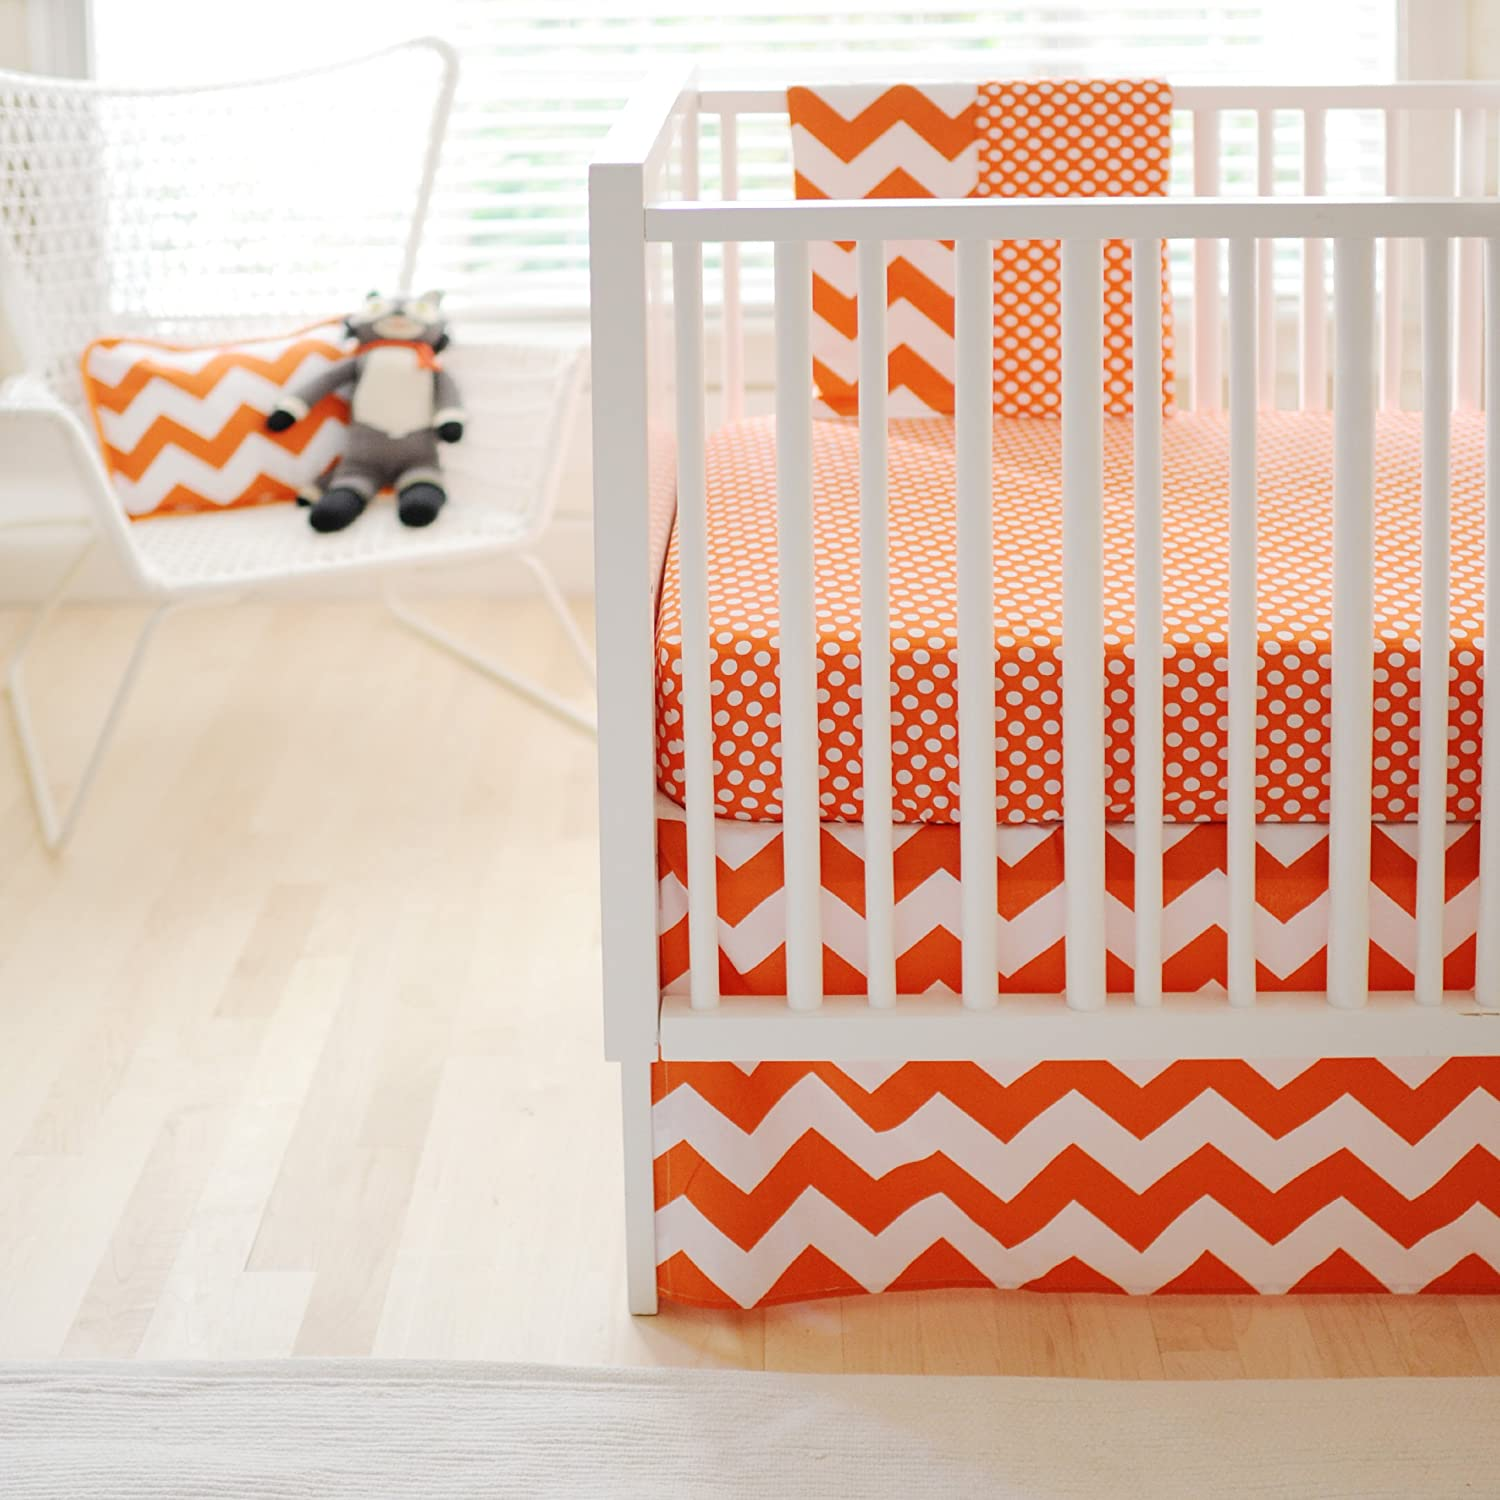 New Arrivals Zig Zag Baby 2 Piece Crib Bedding Set, Tangerine